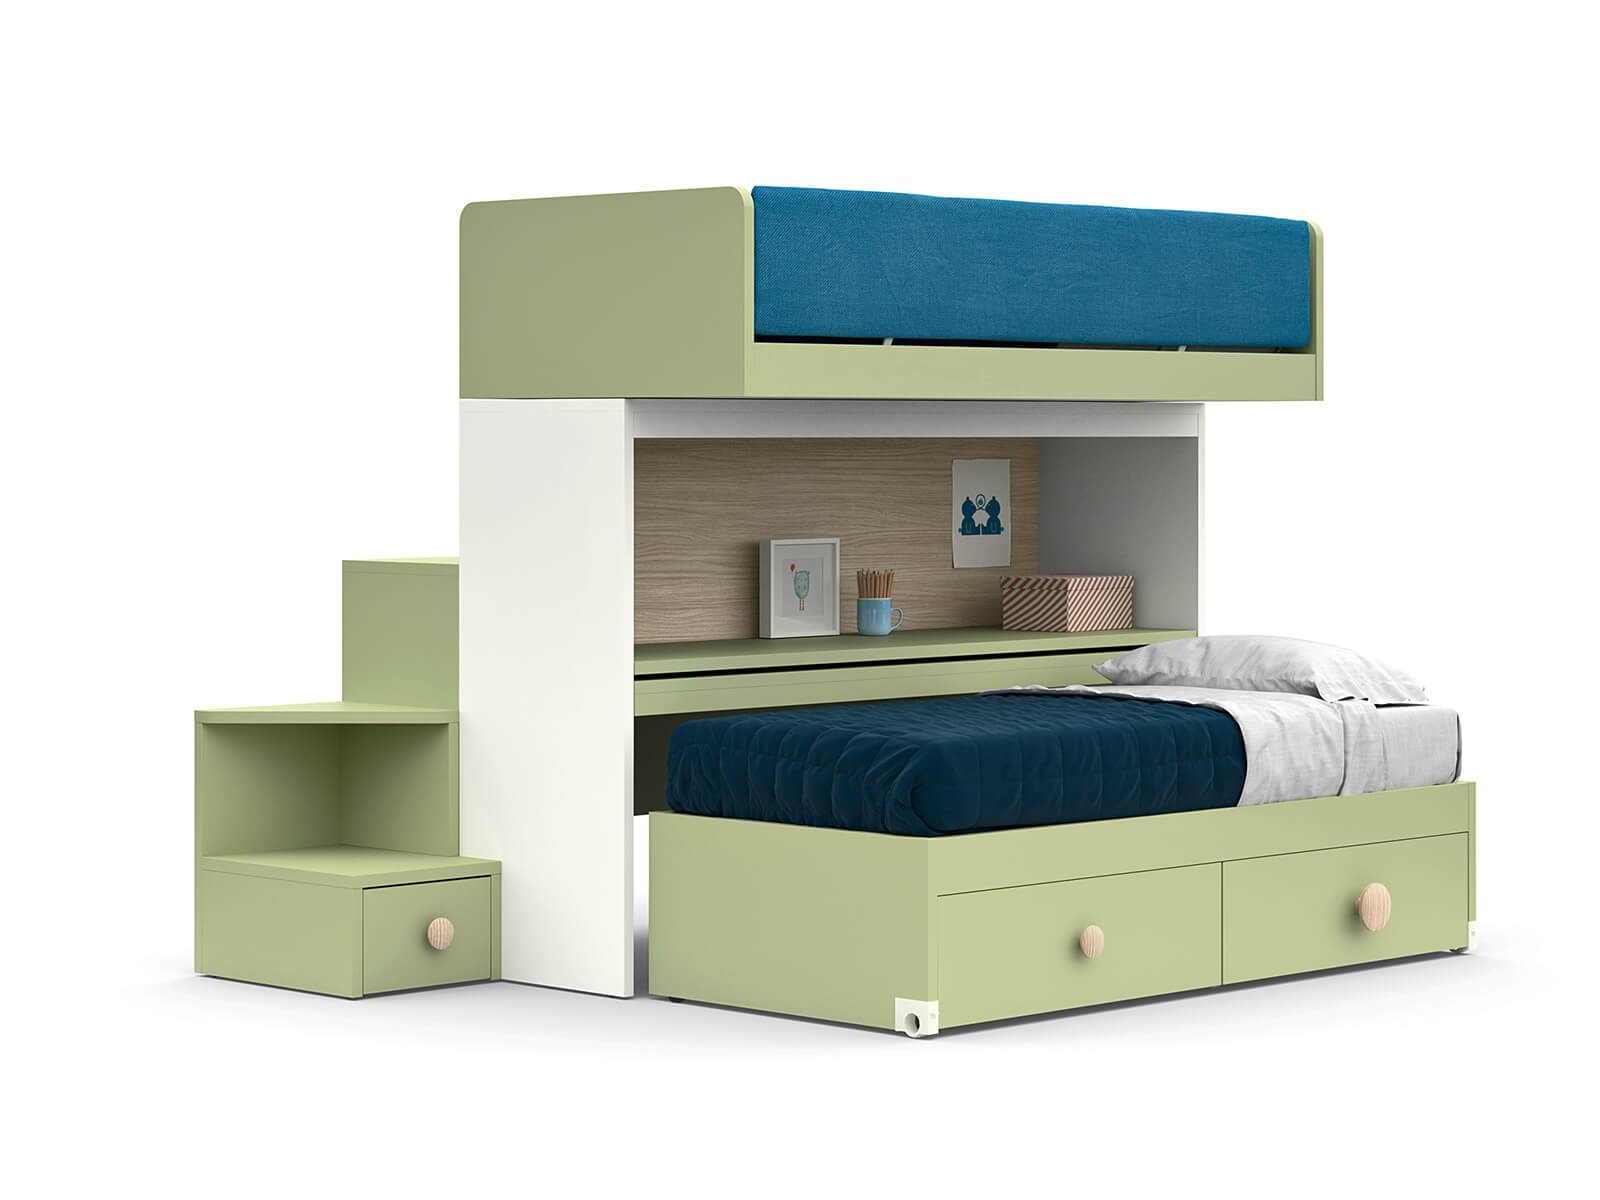 SKID sliding bunk bed